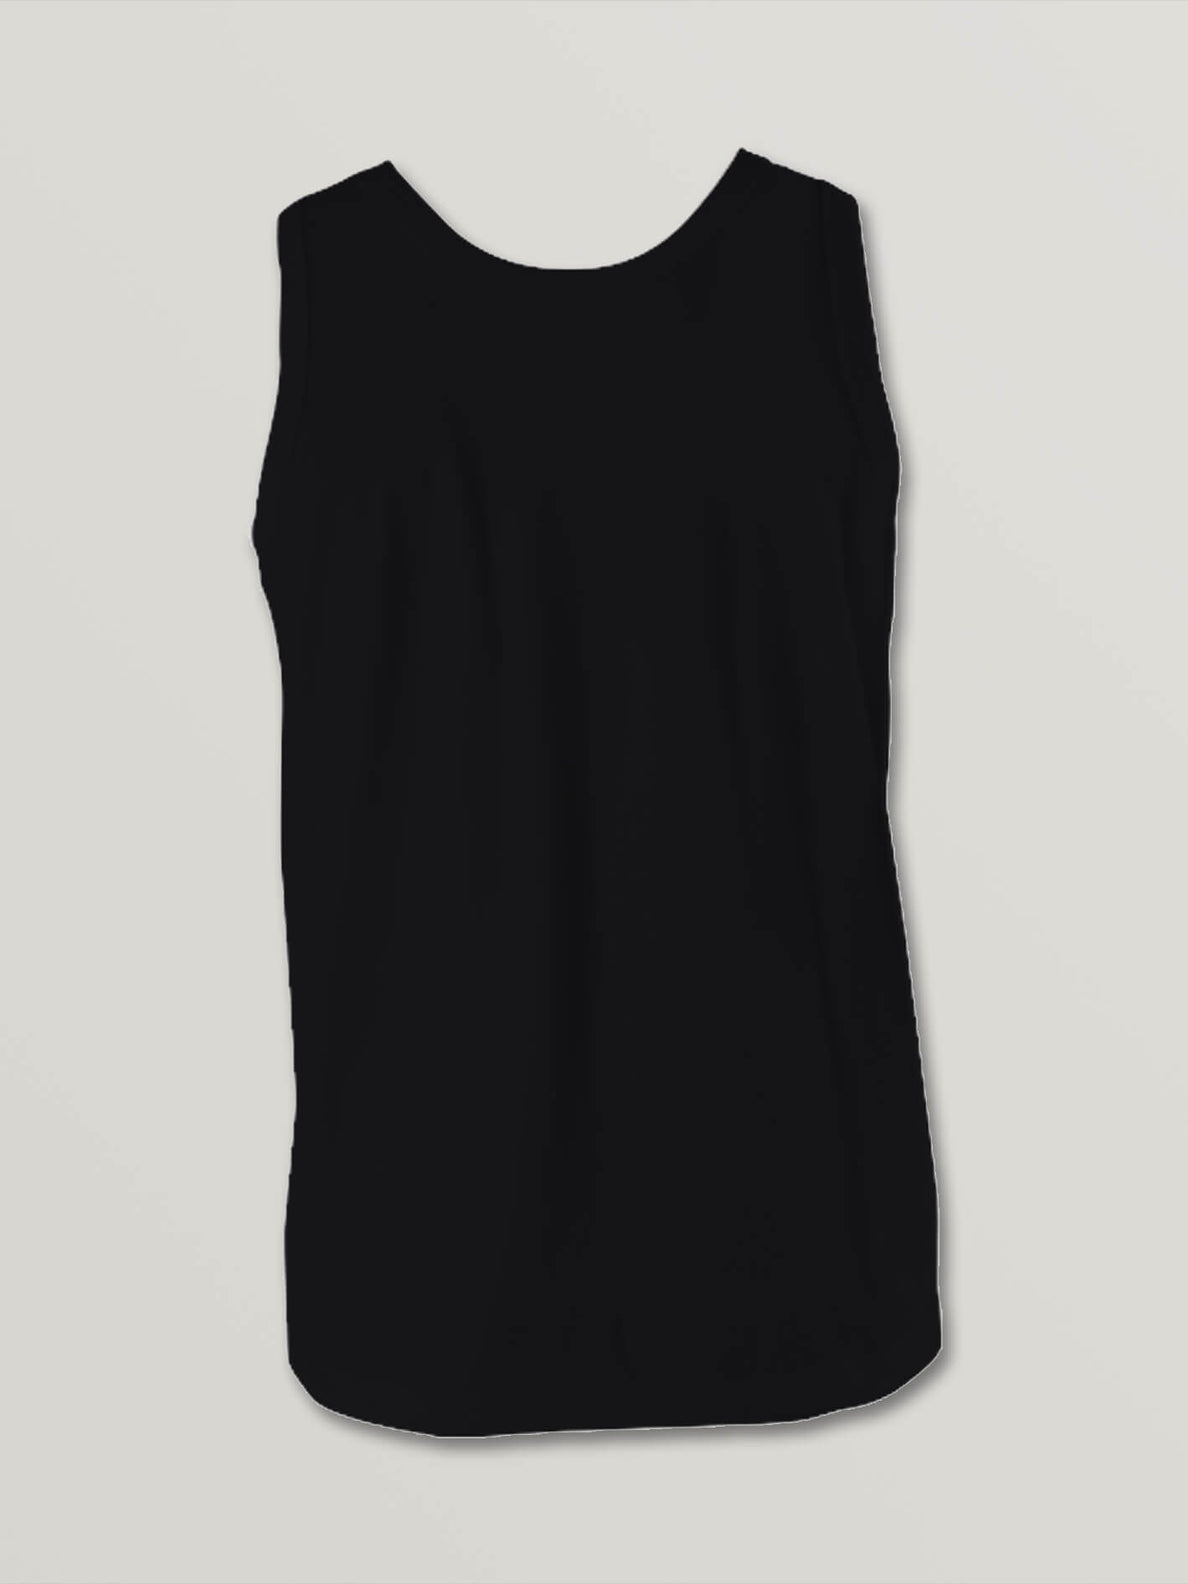 Big Boys Stone Sounds Tank In Black, Back View